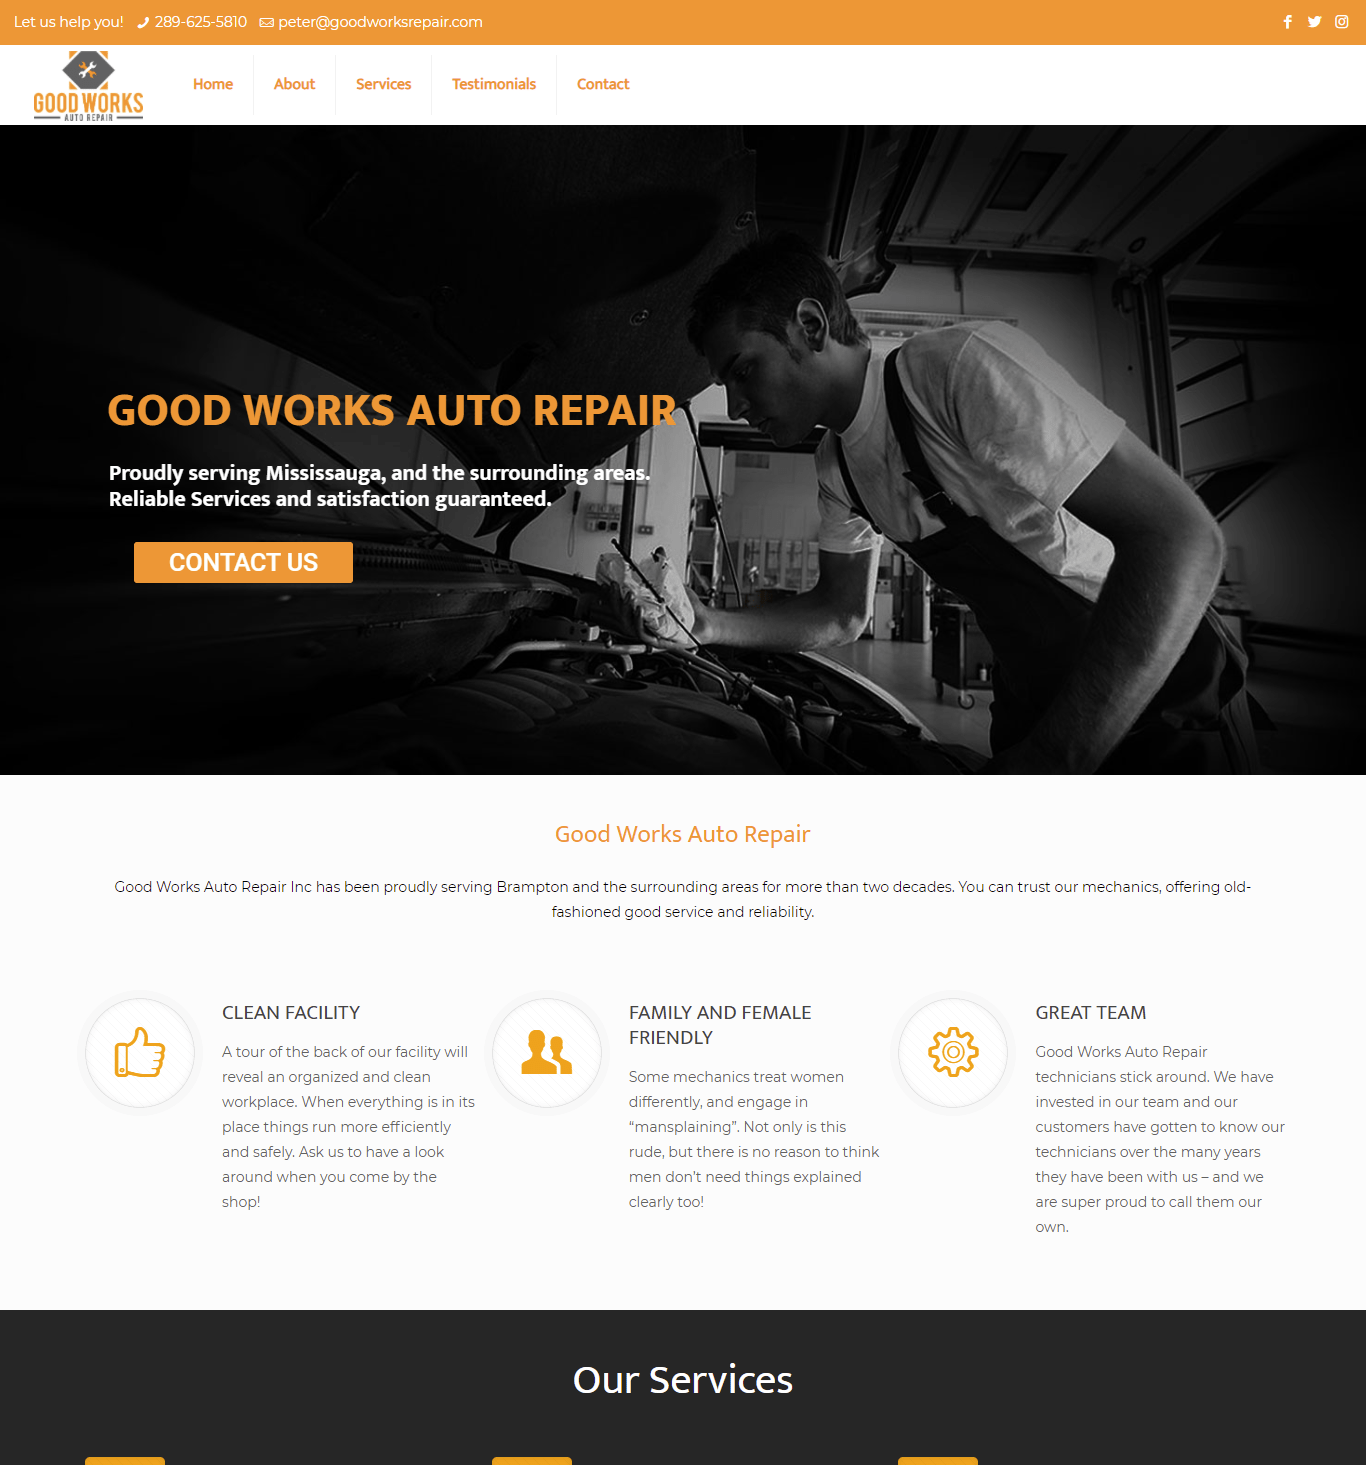 Good Works Auto Repair Website Portfolio